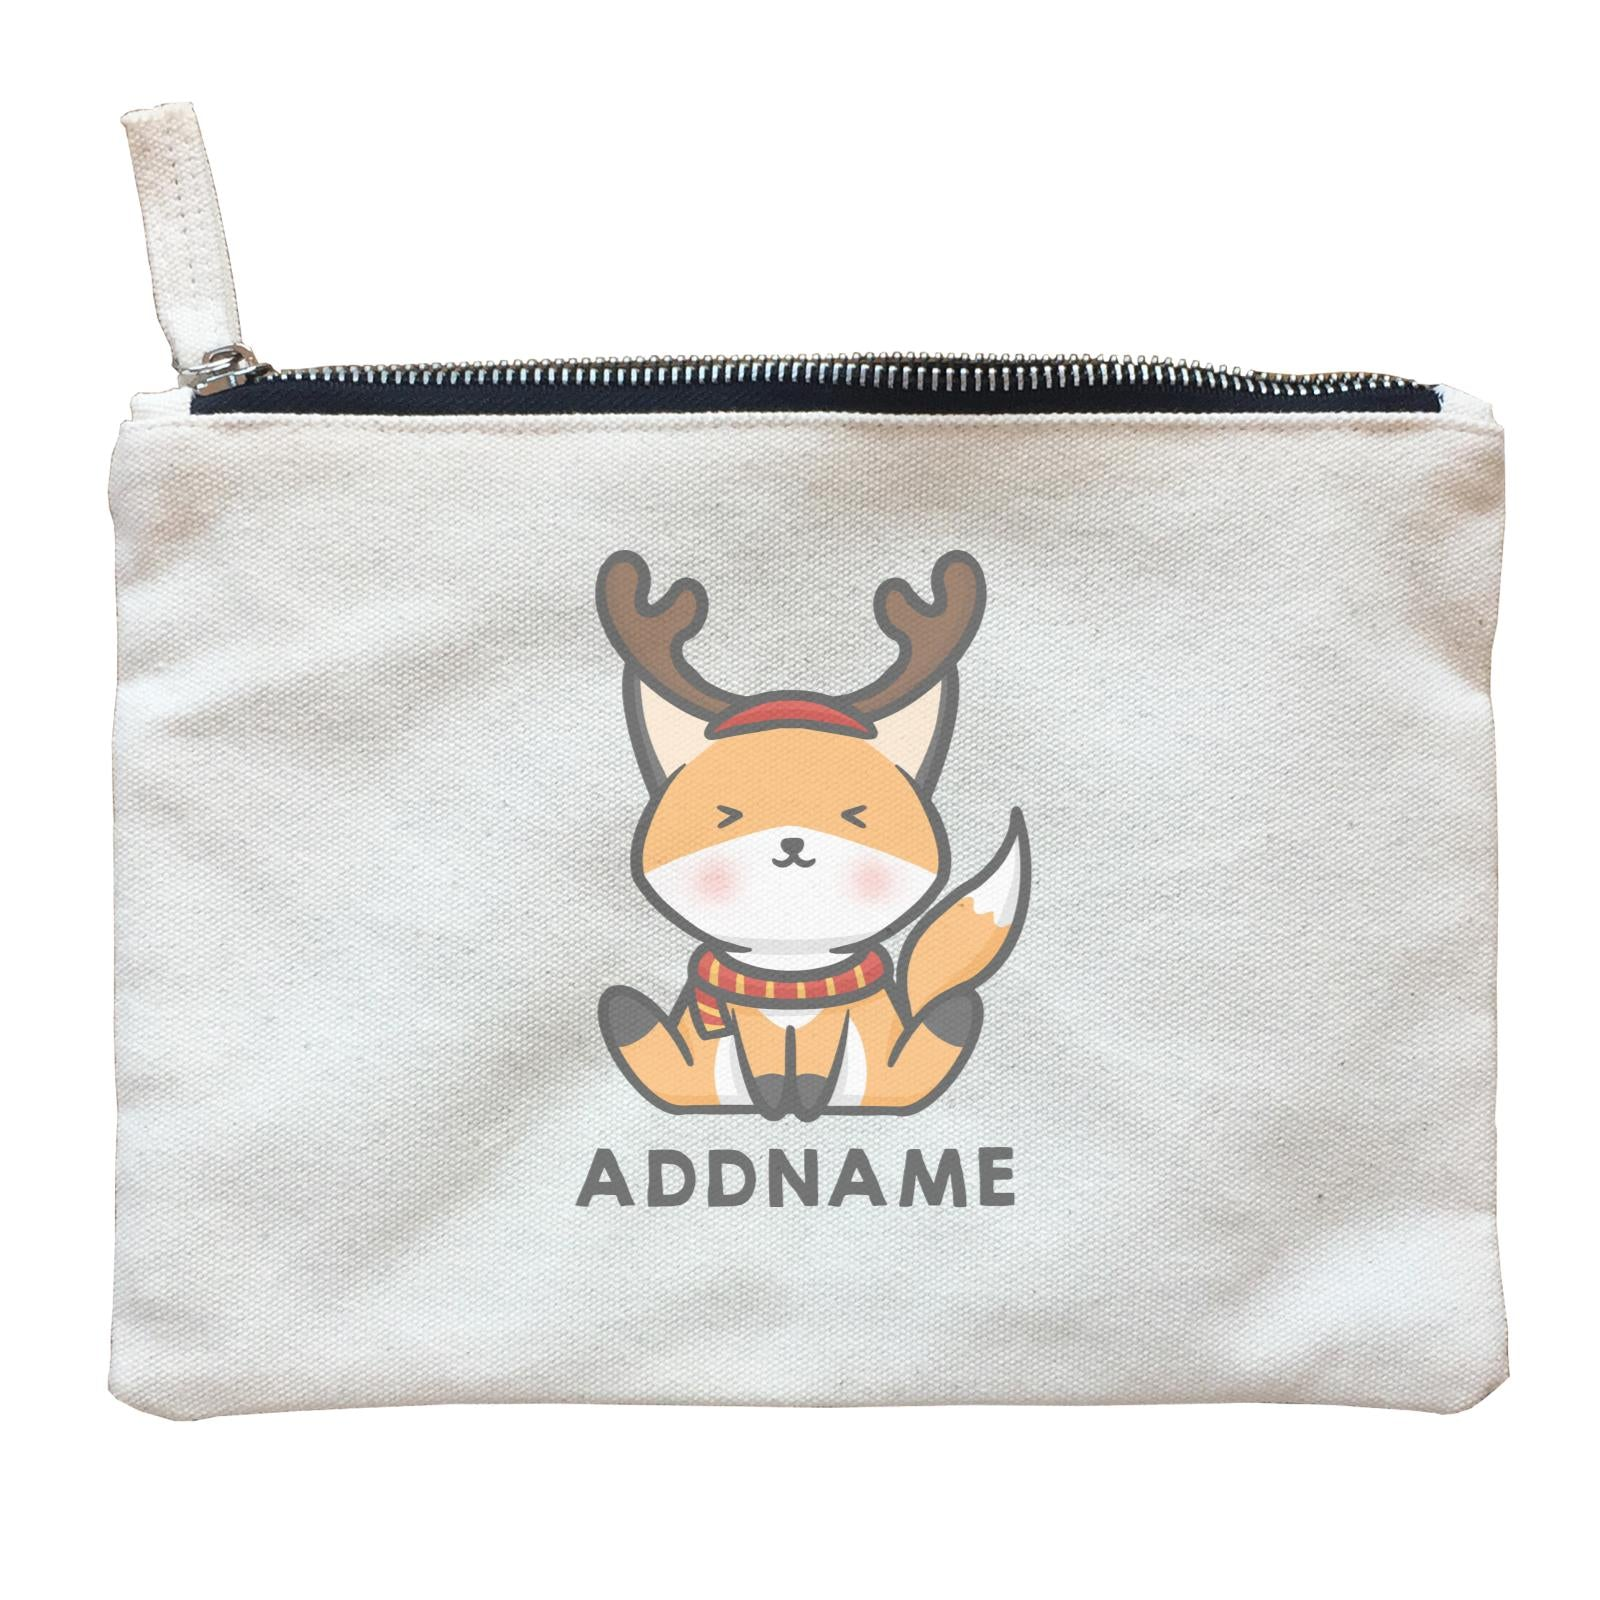 Xmas Cute Fox With Reindeer Antlers Addname Accessories Zipper Pouch